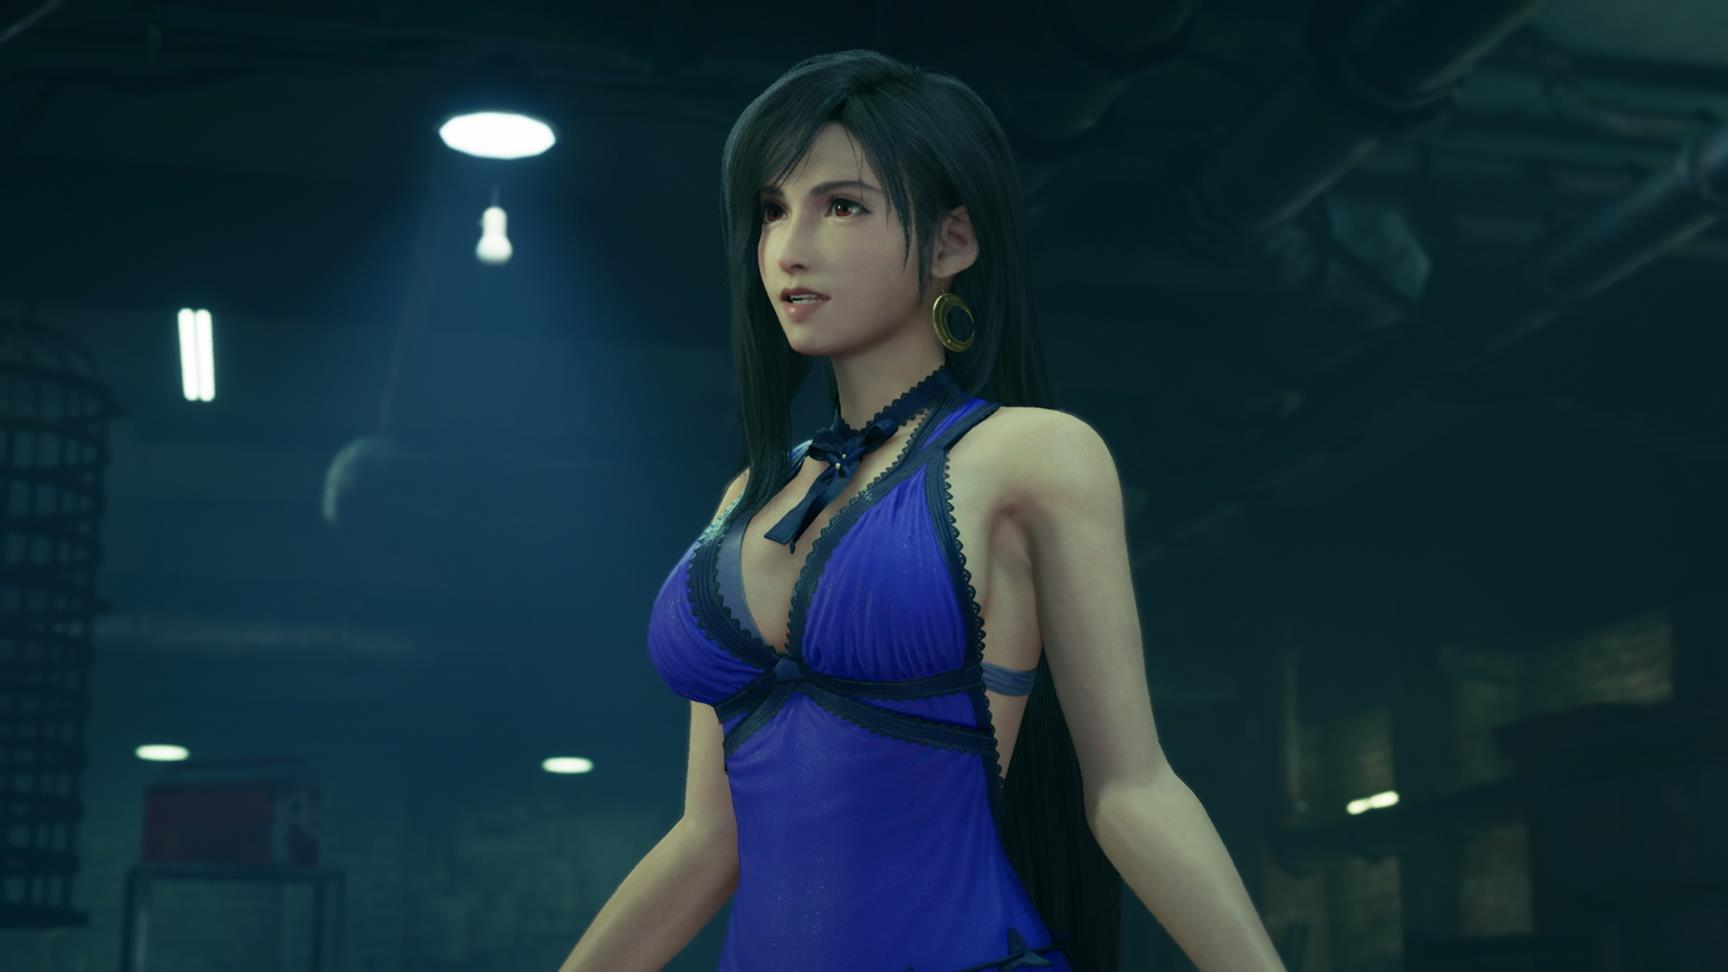 El trailer de Final Fantasy 7 Remake aparentemente confirma la versión para PC 18